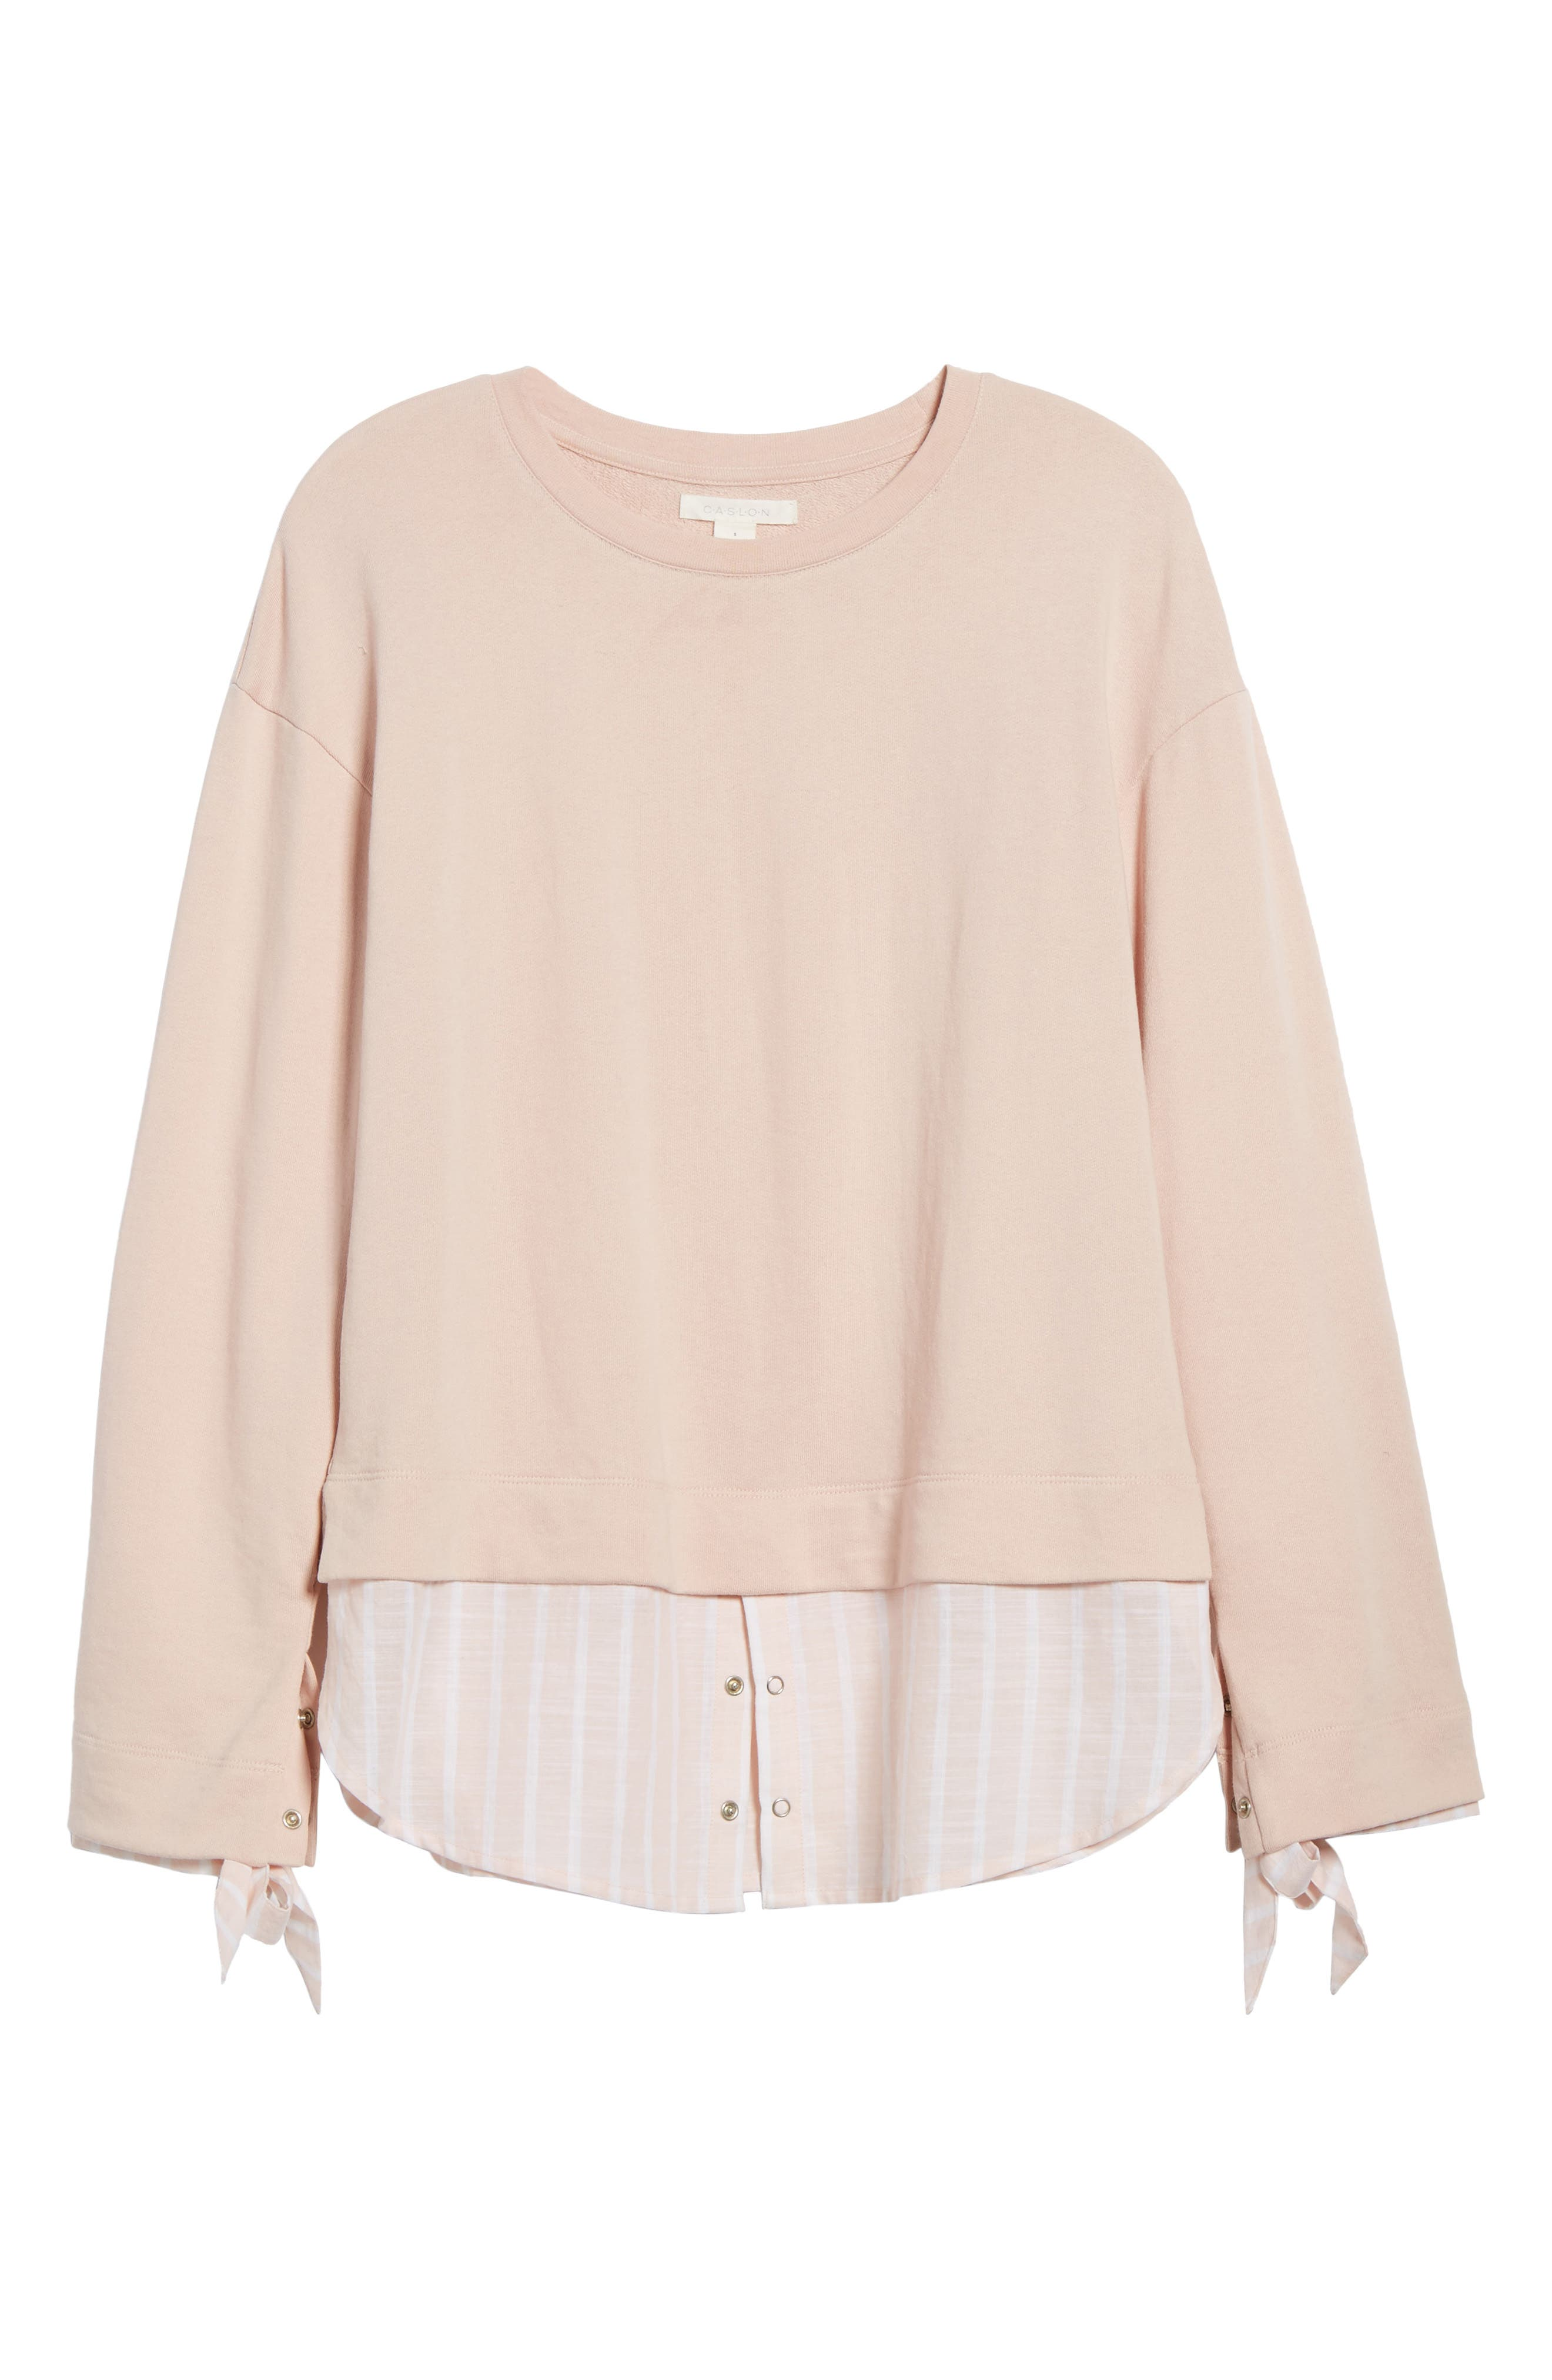 Woven Trim Layered Sweatshirt,                             Alternate thumbnail 6, color,                             Pink- Stripe Colorblock